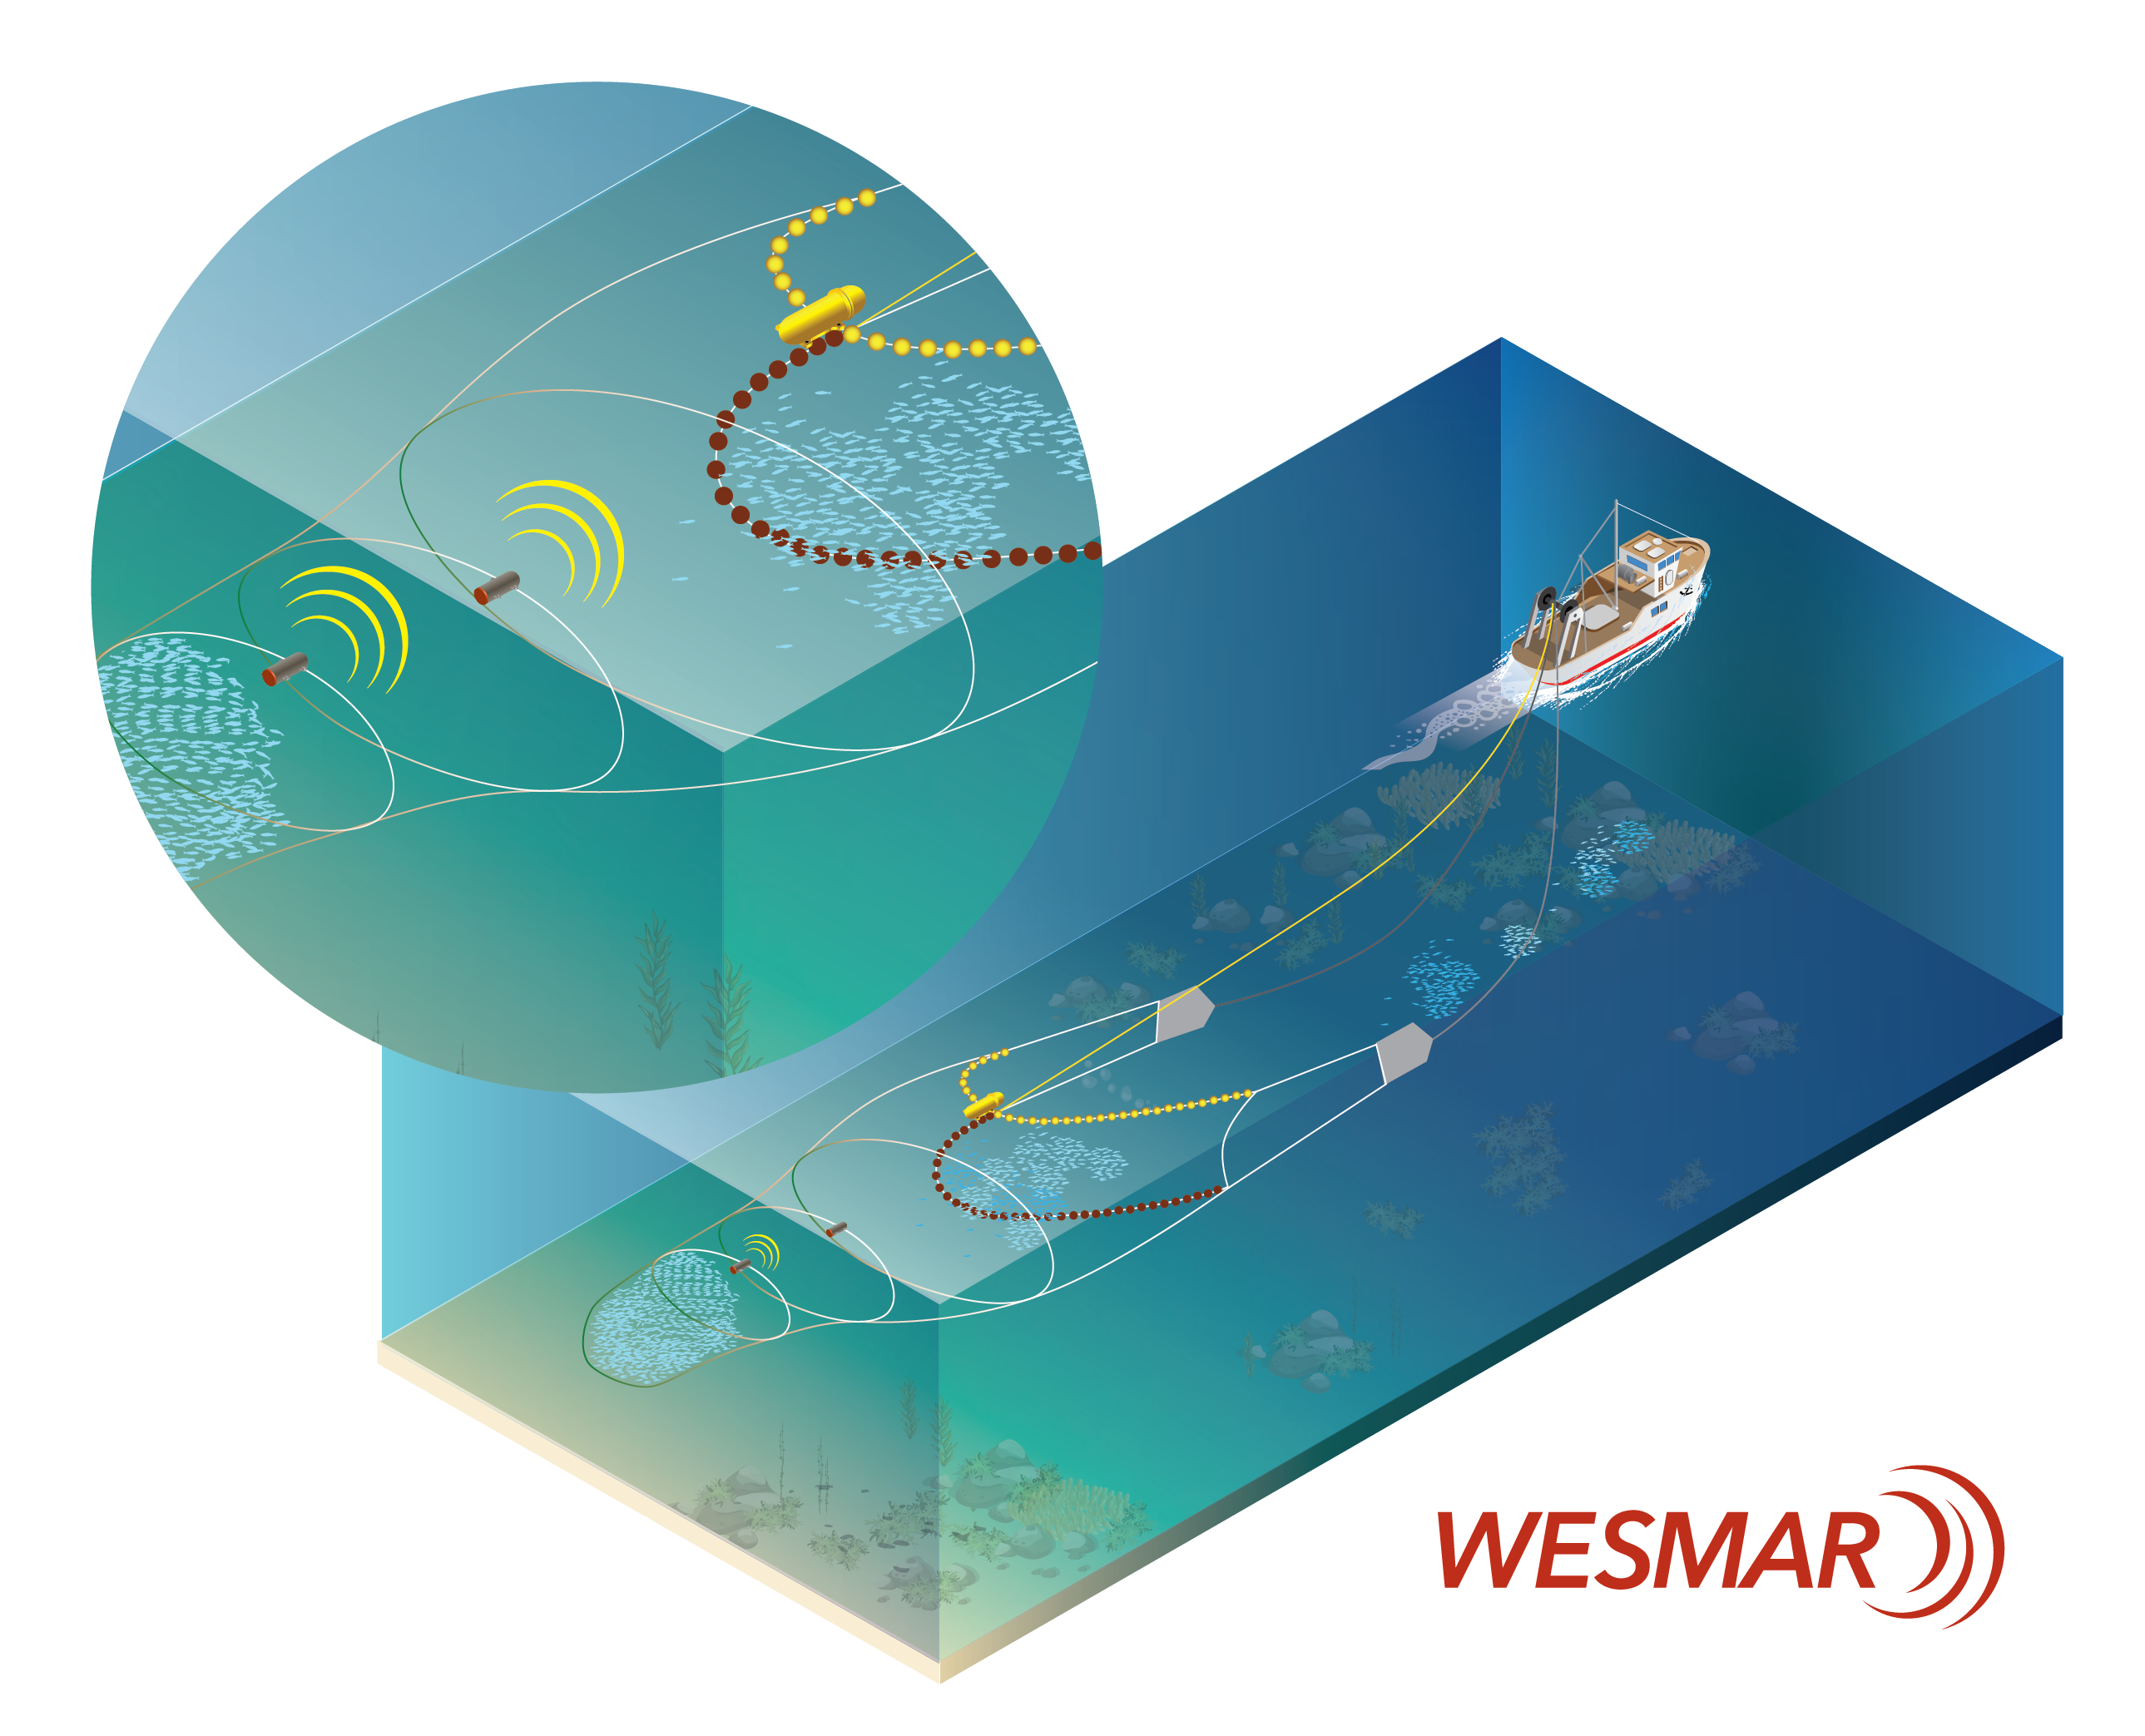 Catch Sensor Placement on Trawl Net